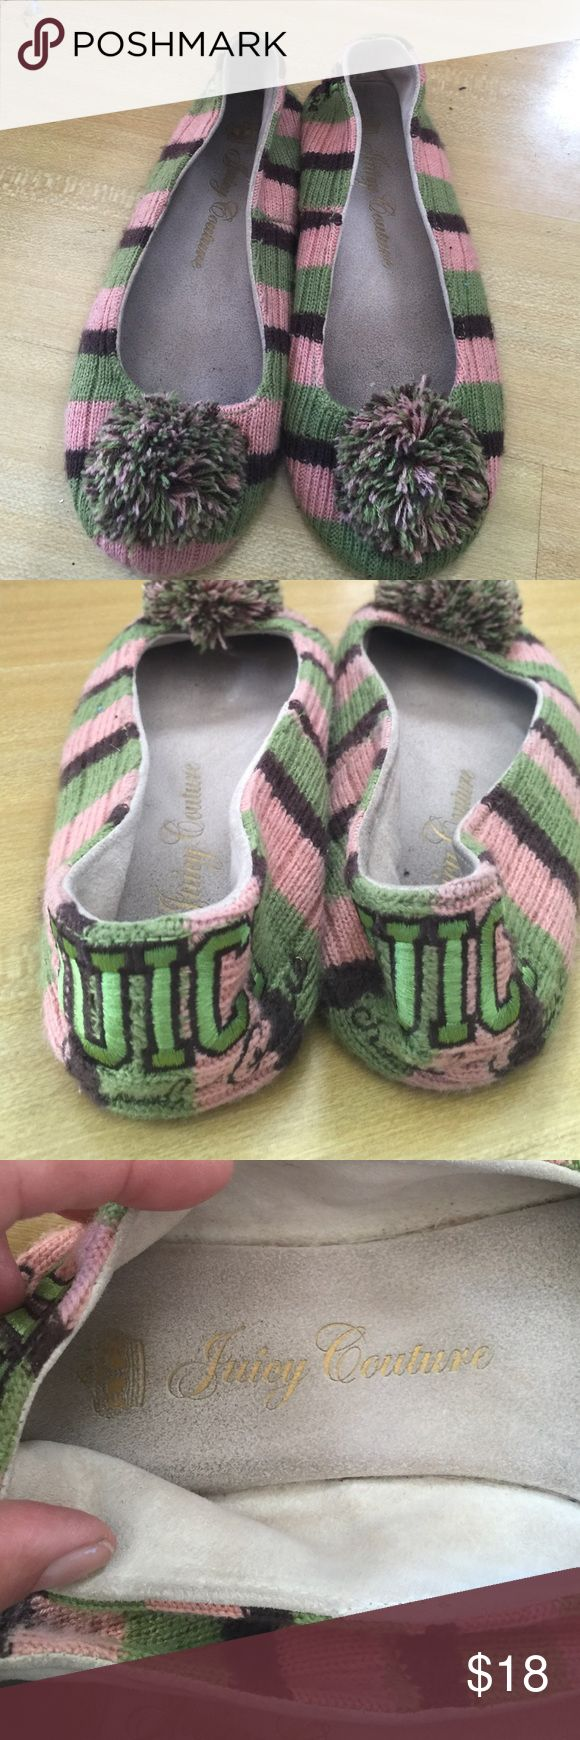 Juicy Couture shoes Juicy Couture shoes sued inside Juicy Couture Shoes Slippers